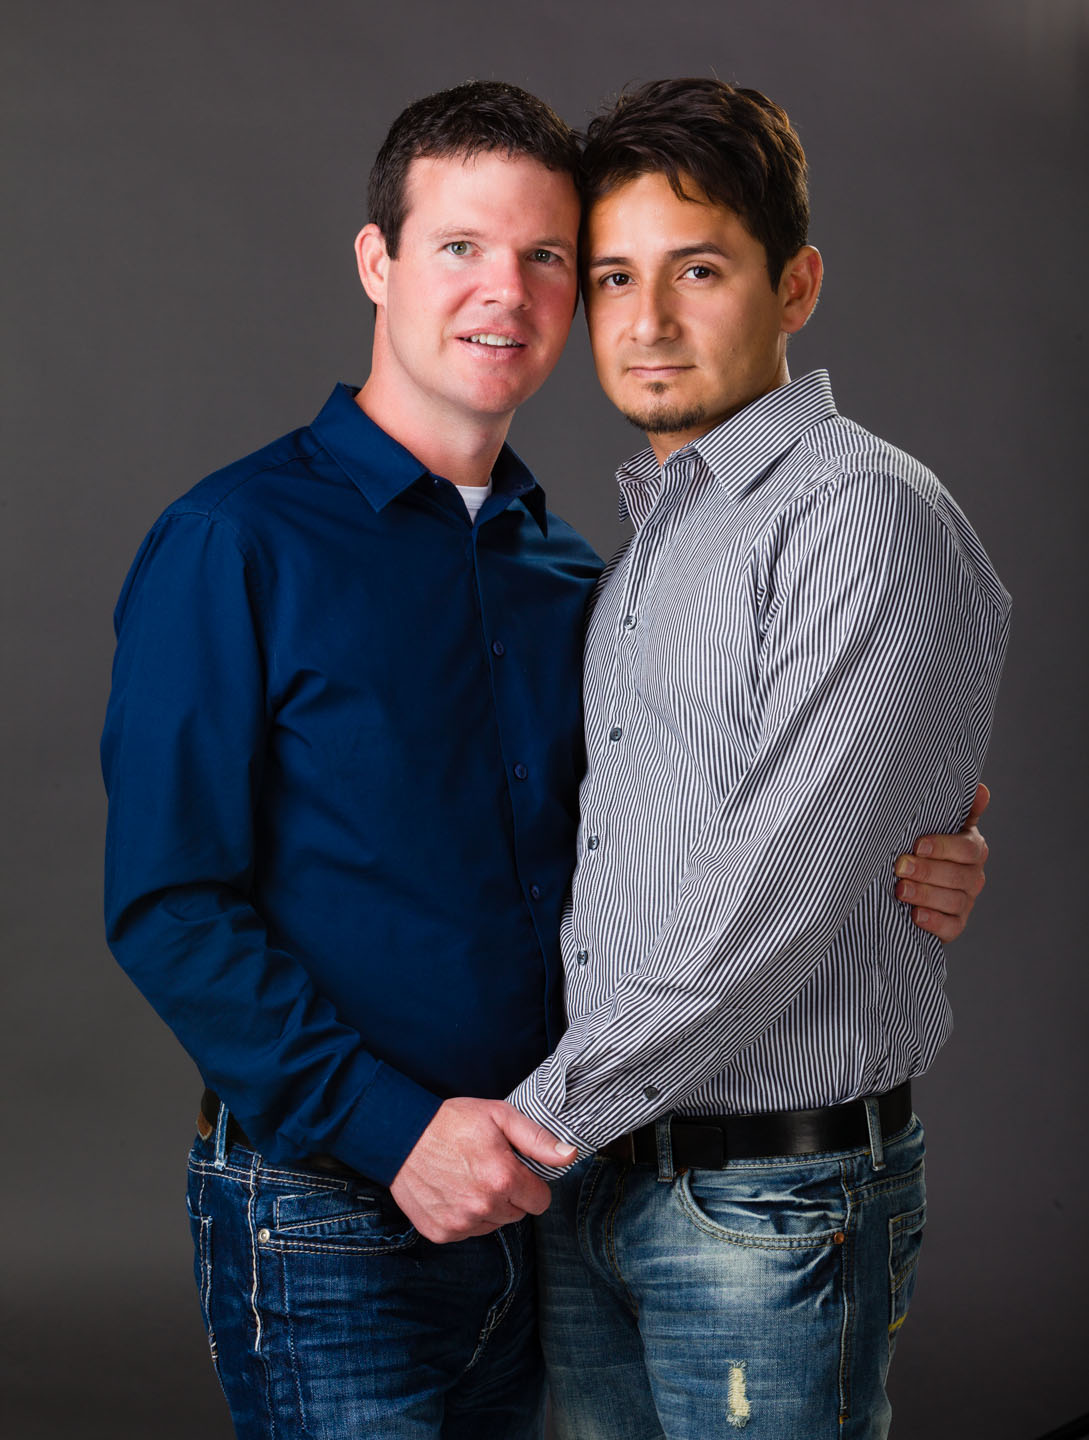 Couple portrait in studio with Alex and Jordan